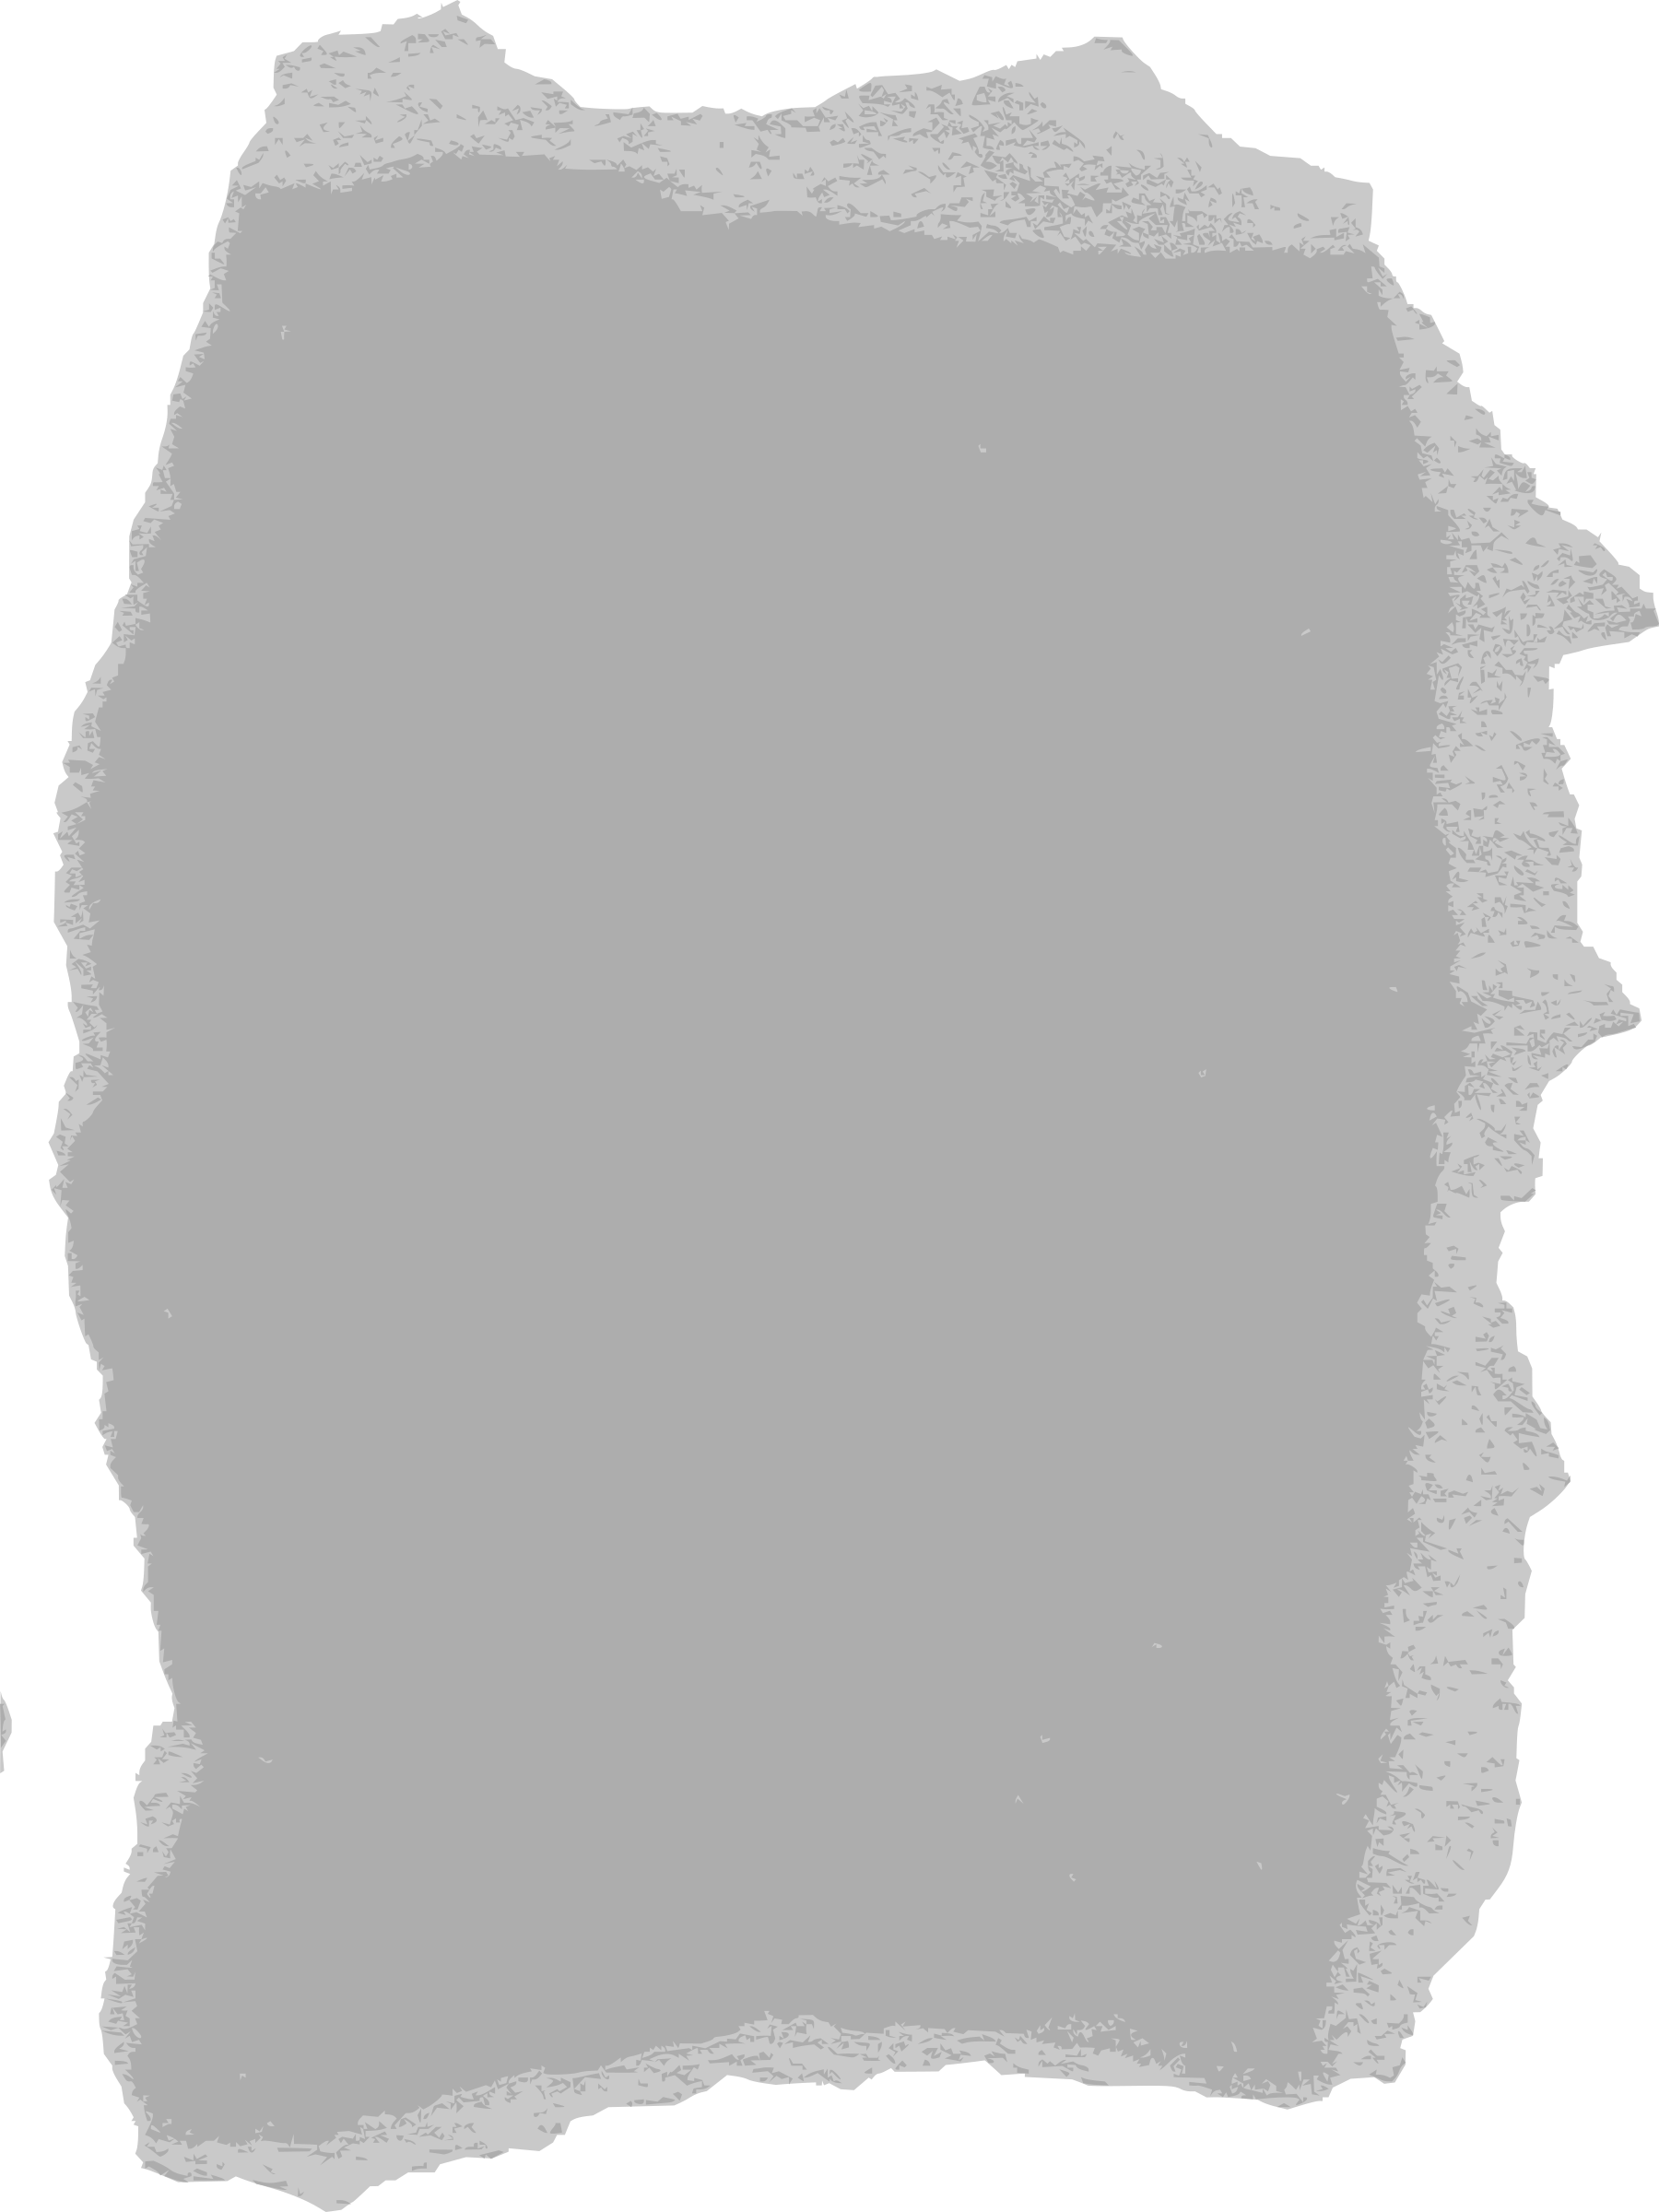 image black and white stock Clipart